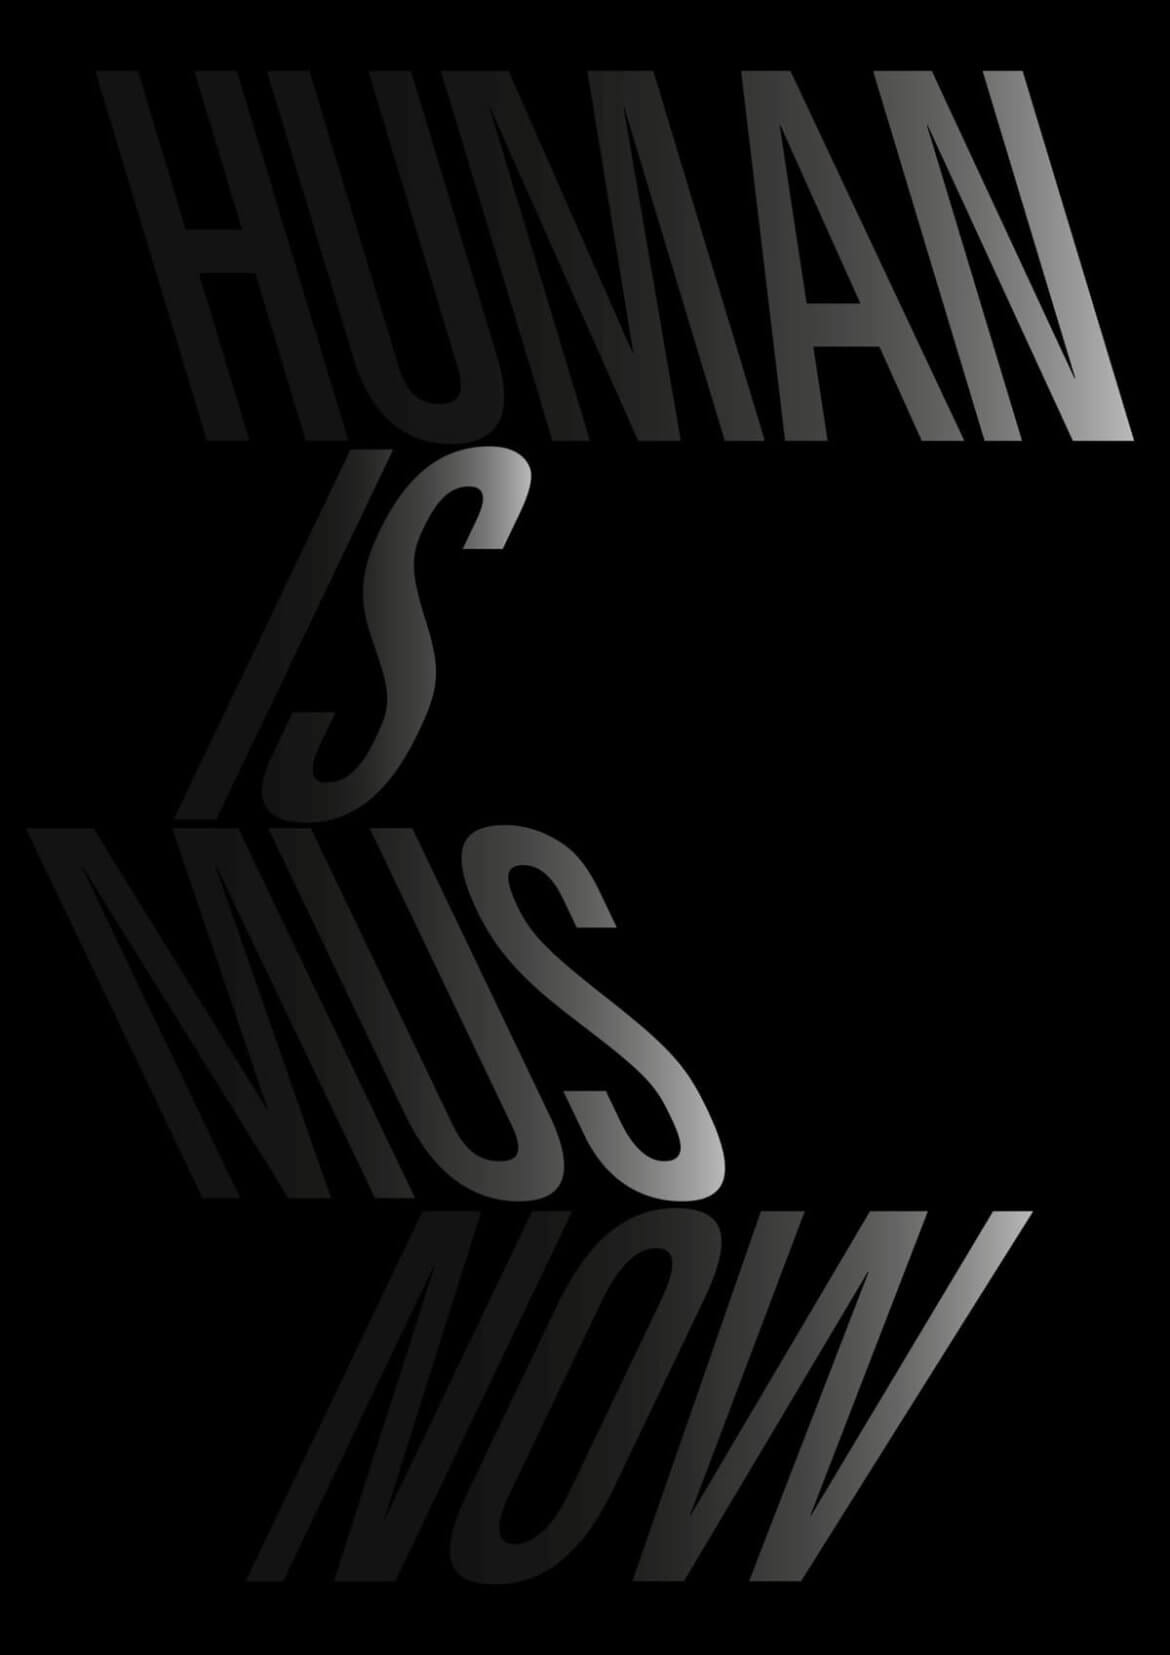 Daniel_Angermann_Humanismus_Now Humanismus